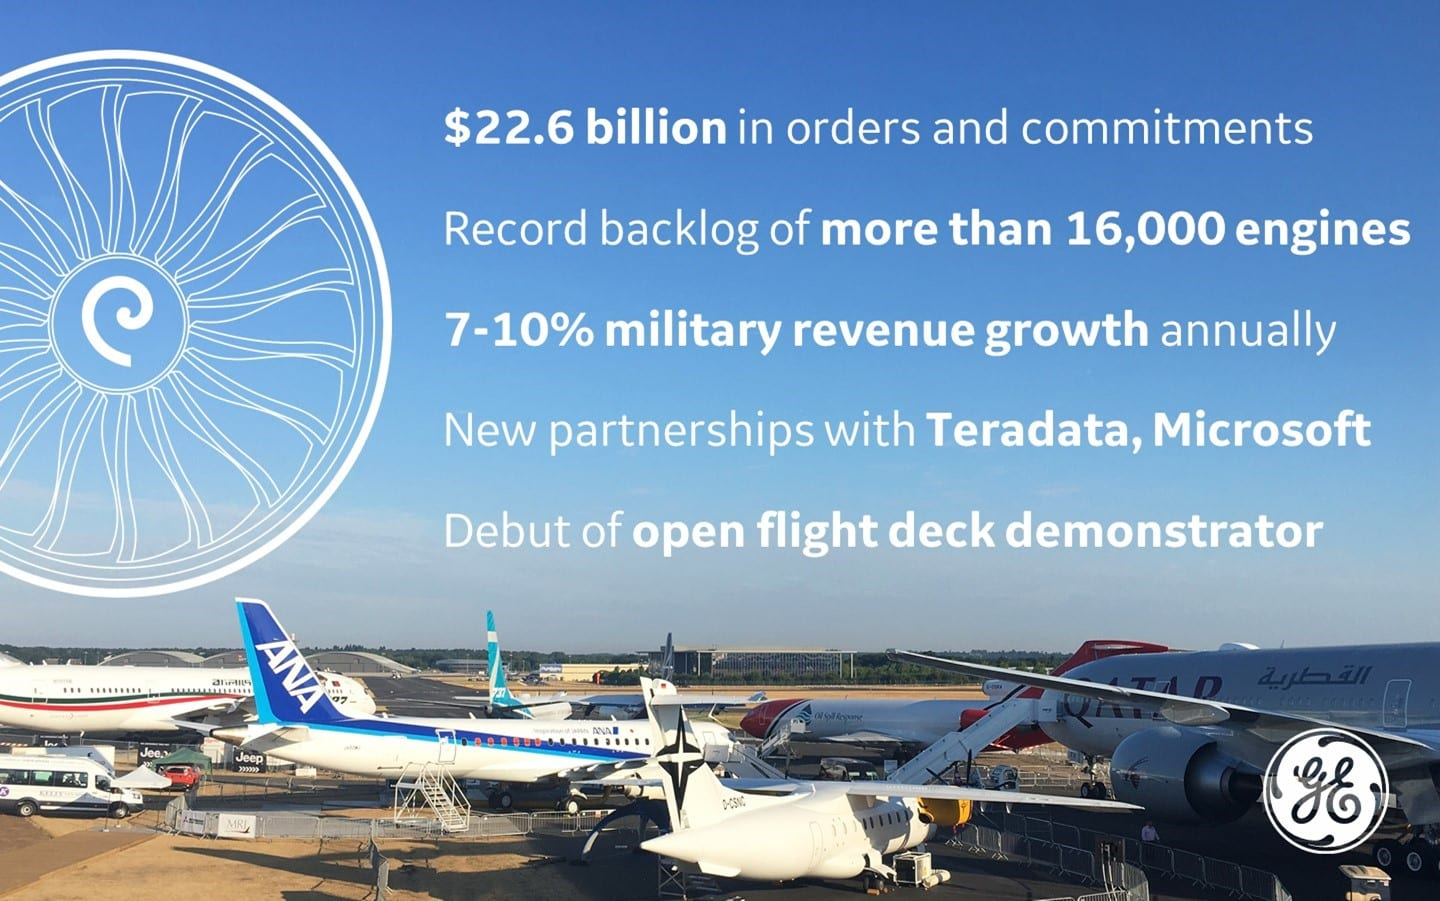 GE Aviation And Its Partners Win $22 Billion In New Deals At Farnborough Airshow